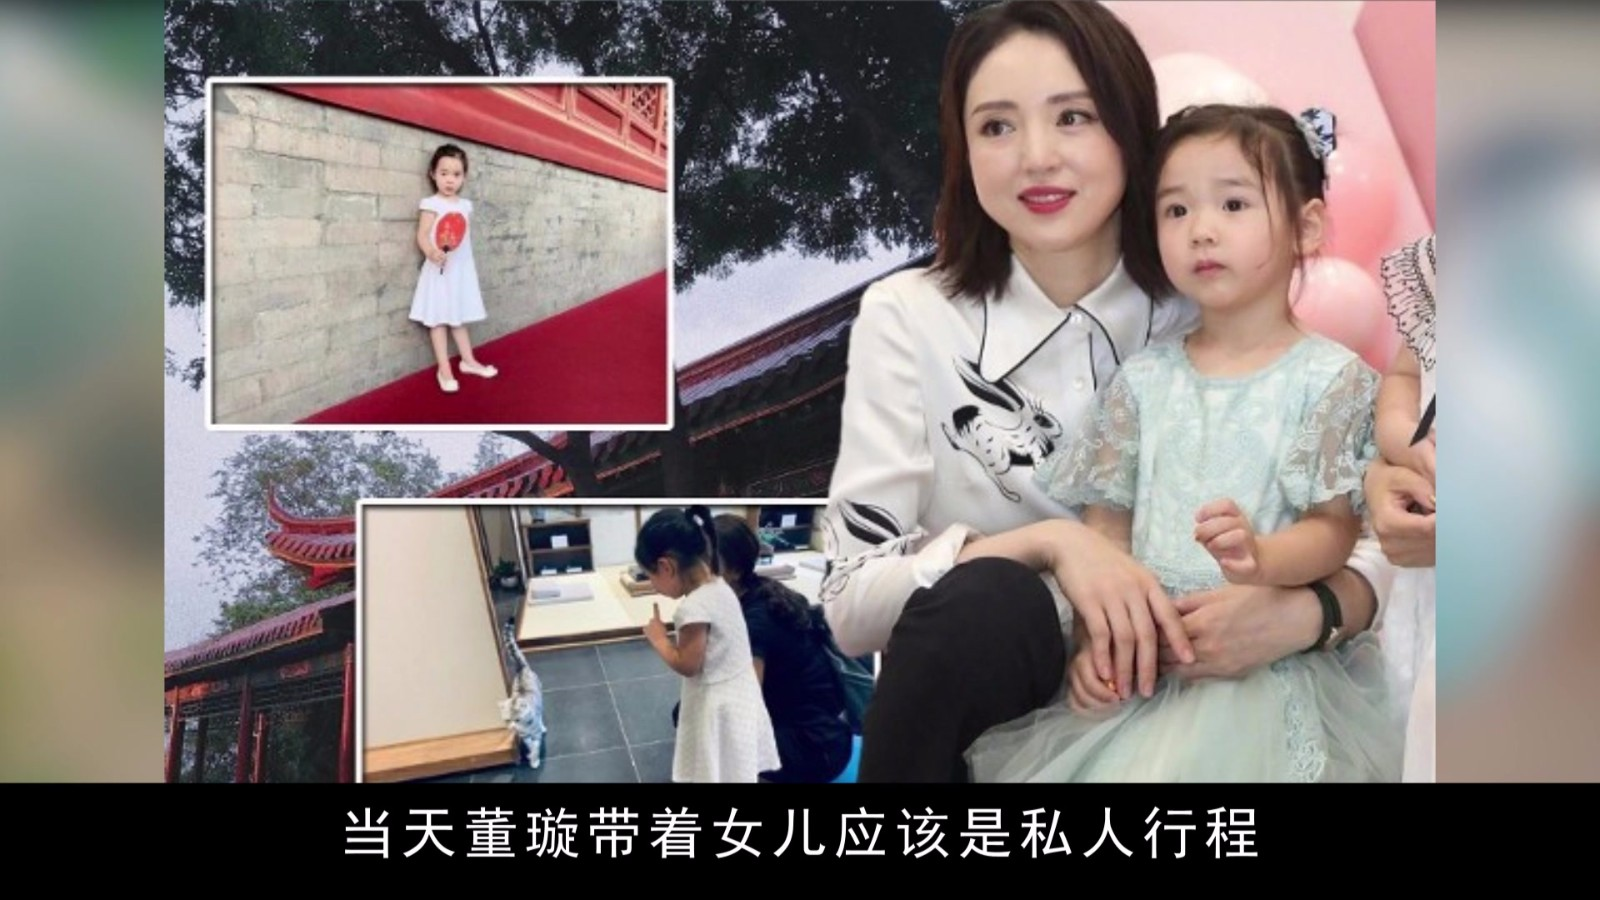 After divorcing Gao Yunxiang, Dong Xuan took her daughter out to play, and her dimple smile was much less.